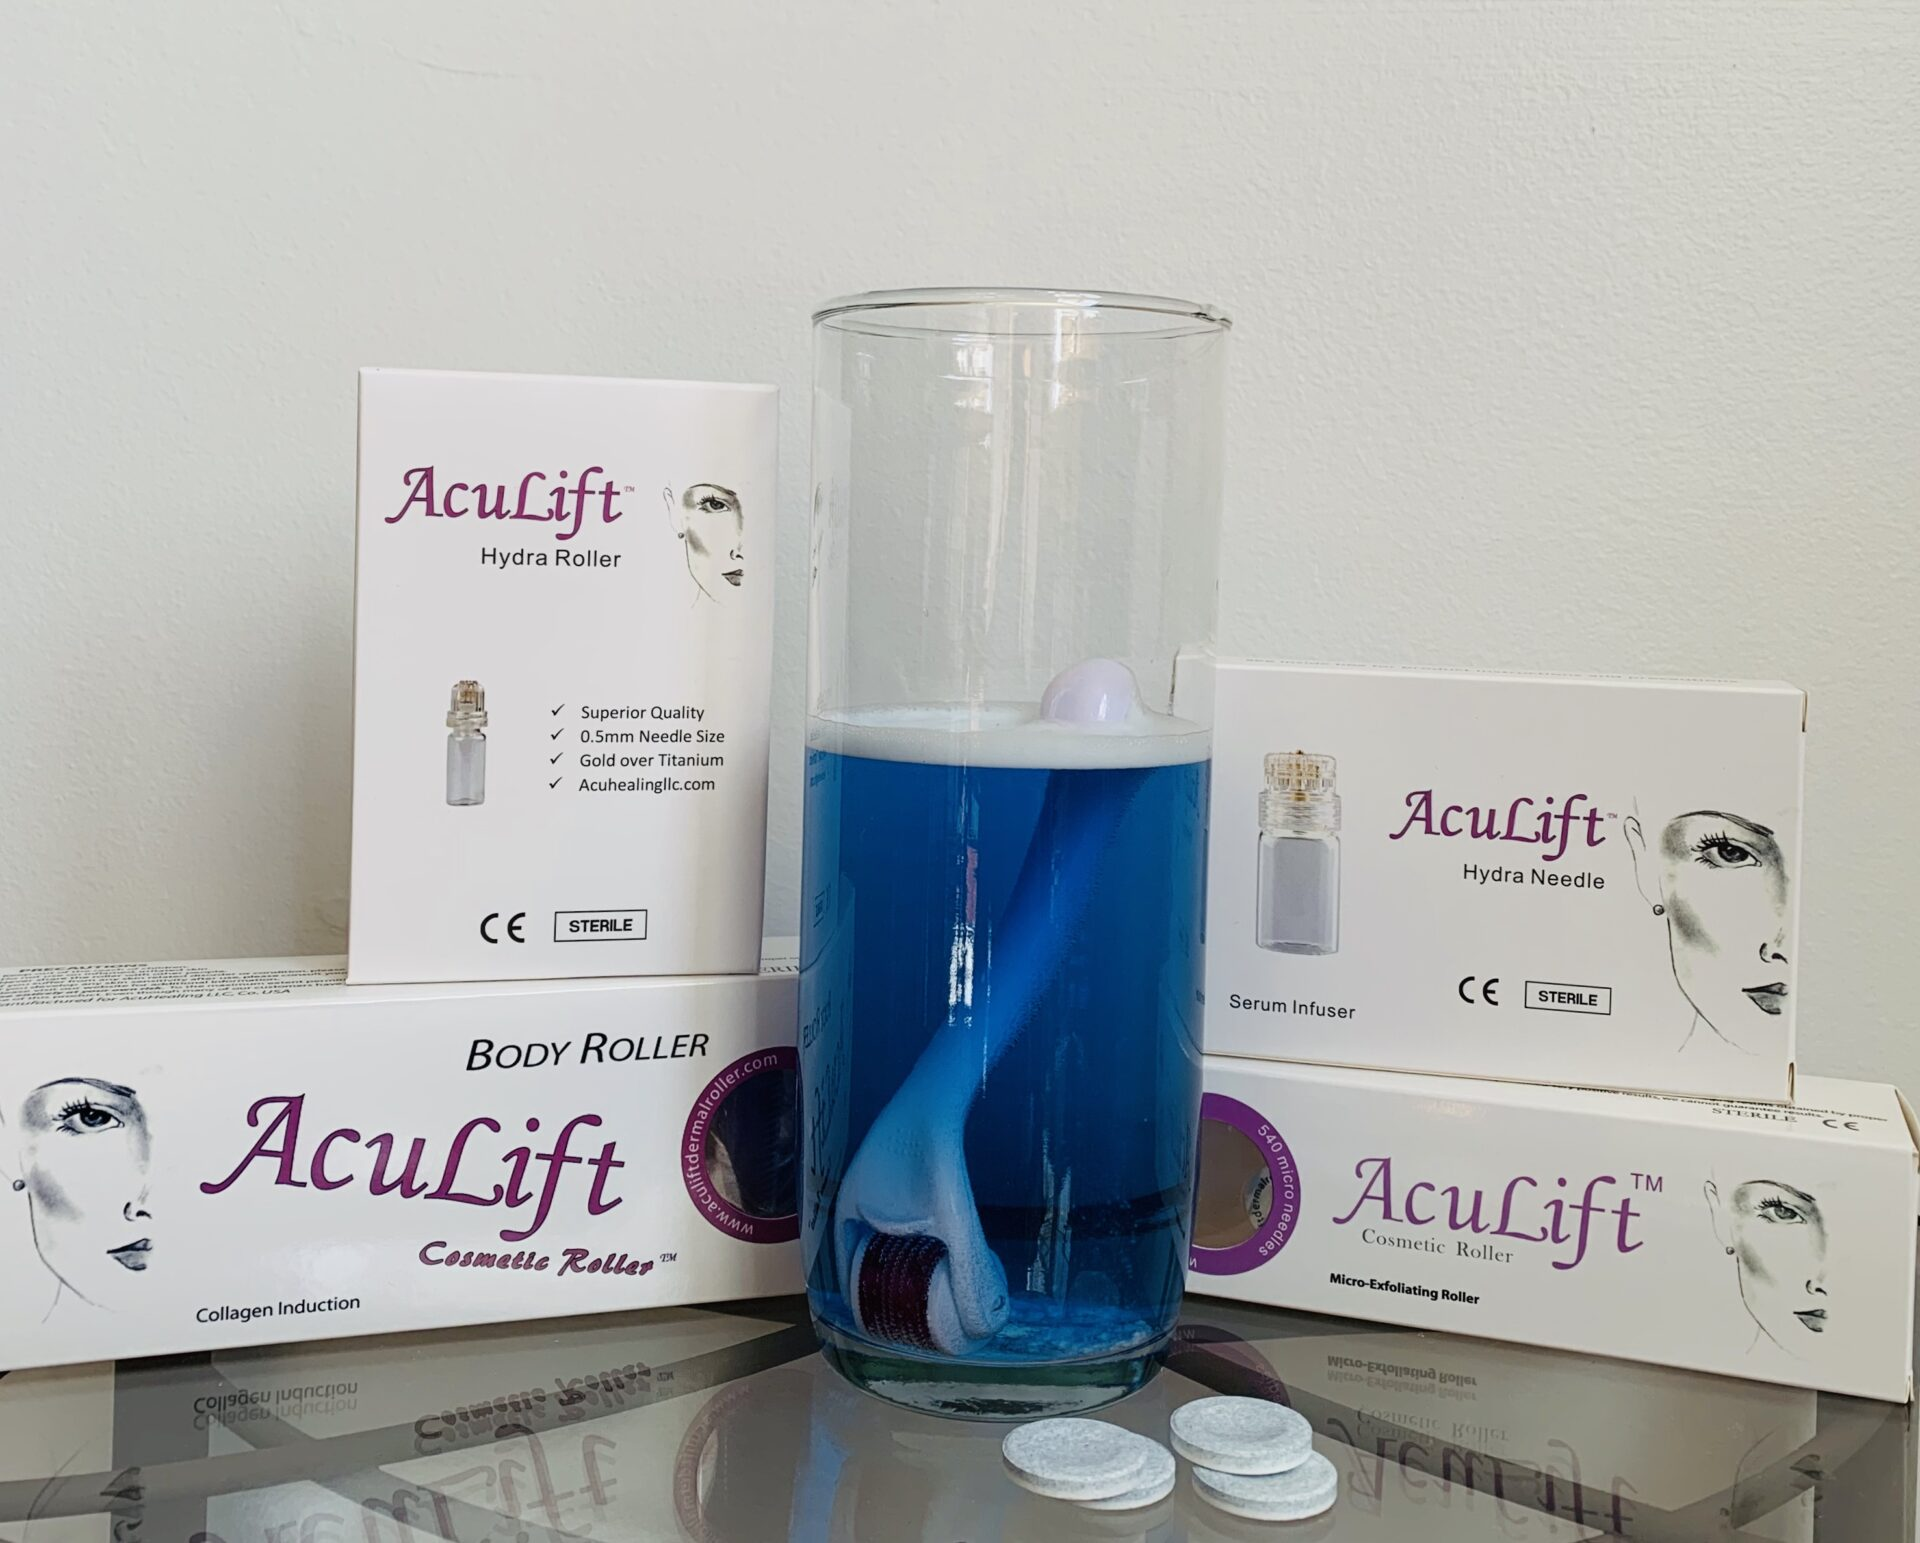 Aculift Skincare Products